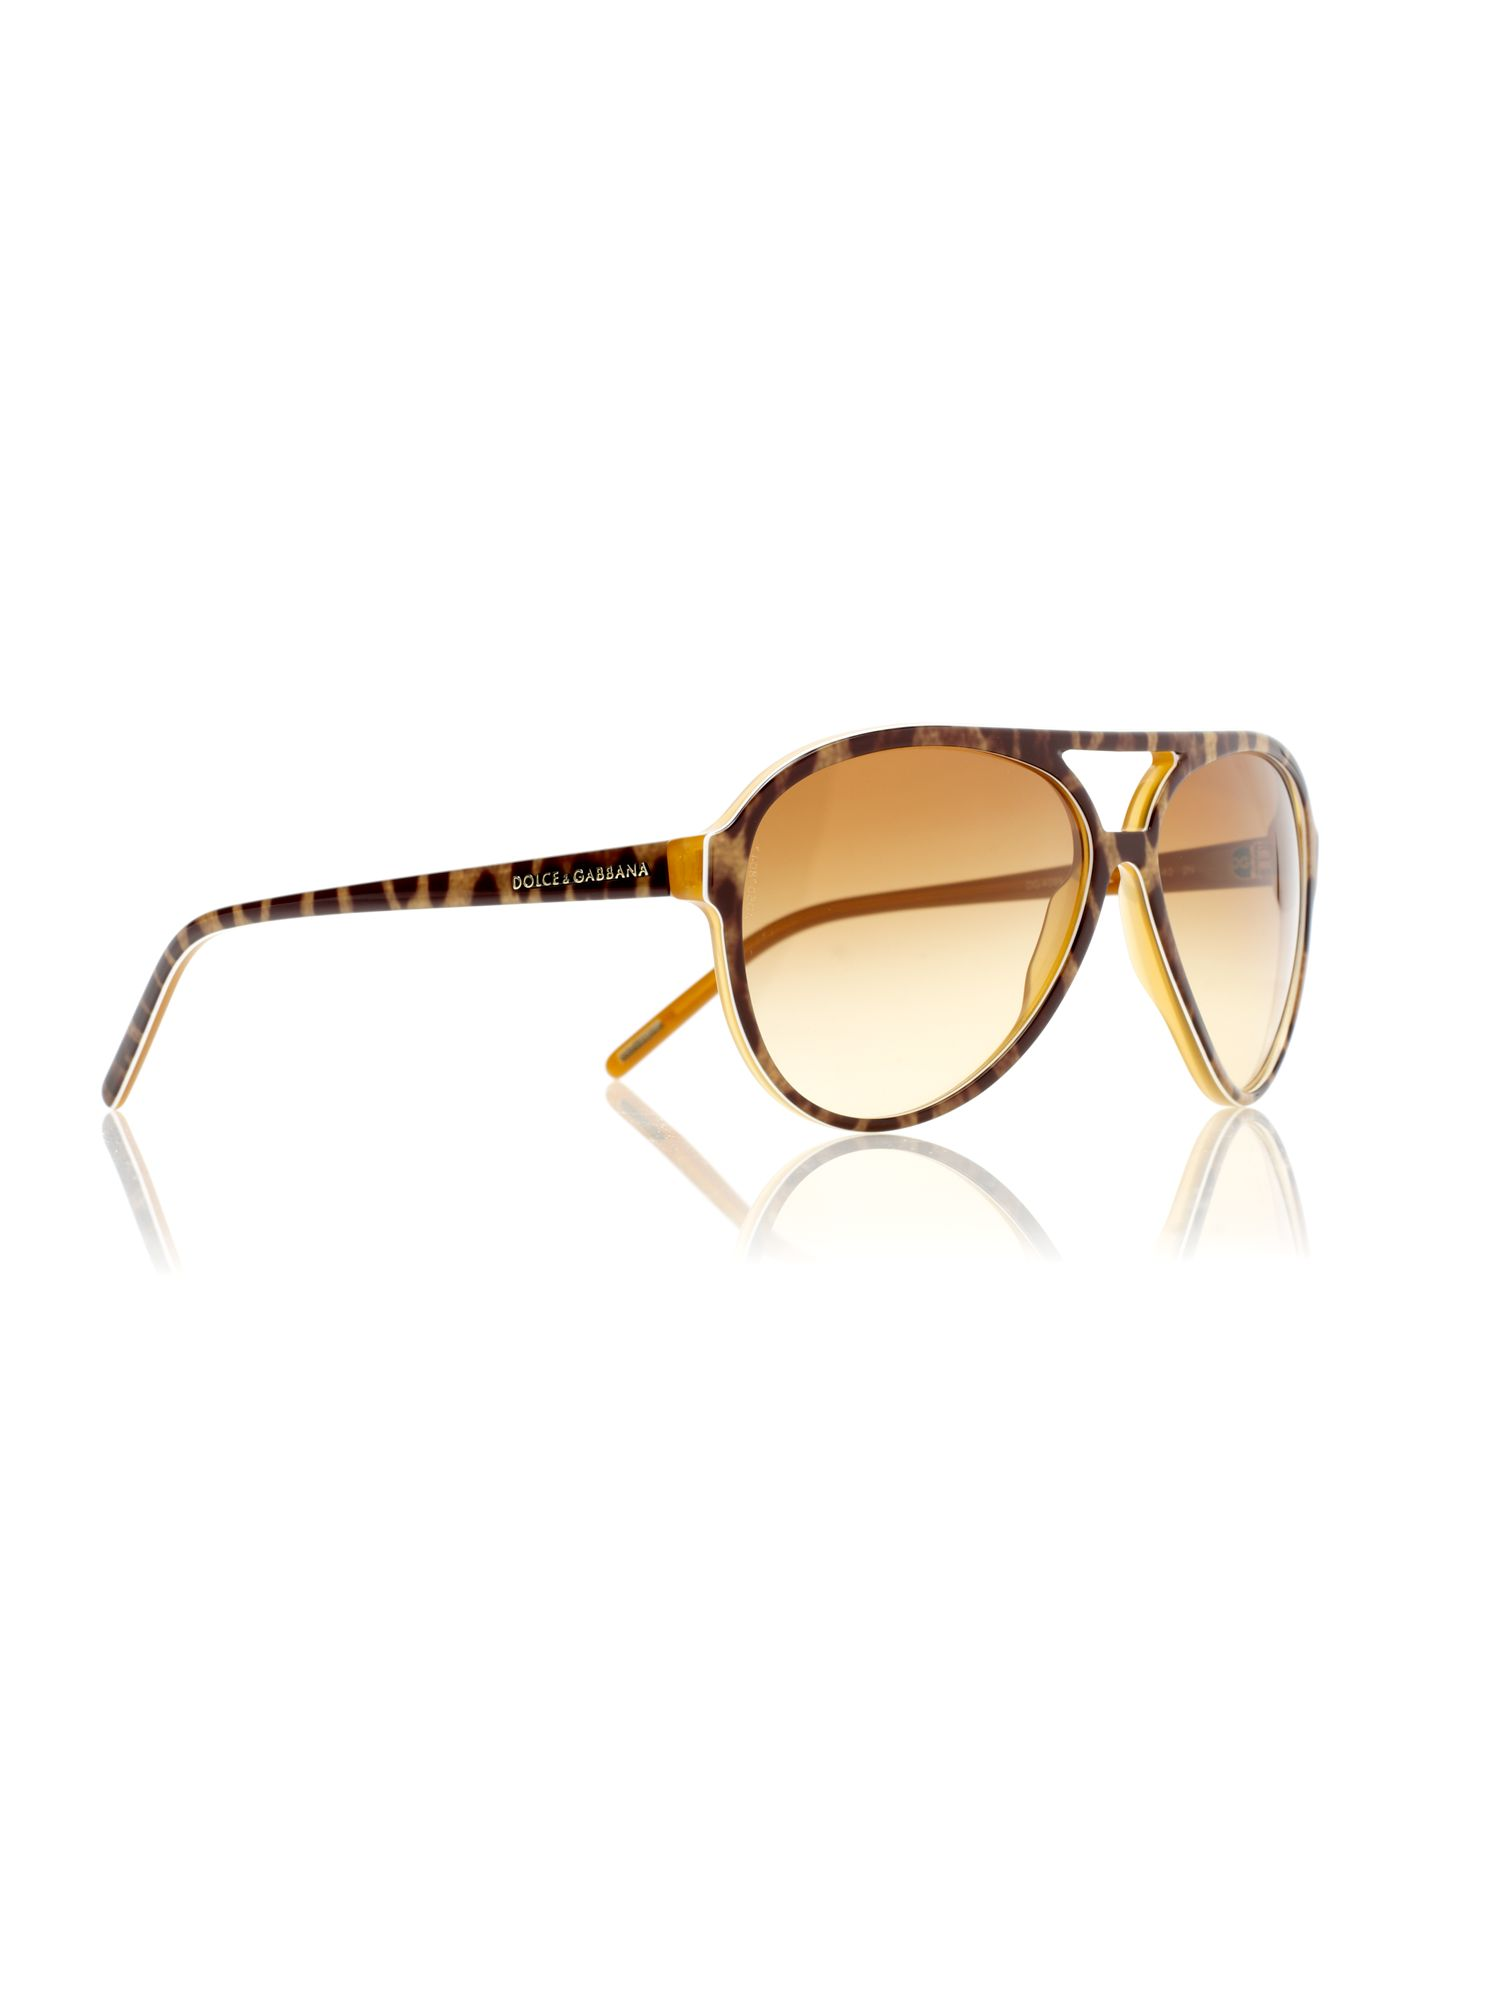 Ladies DG4099 Animal Print Aviator Sunglasses